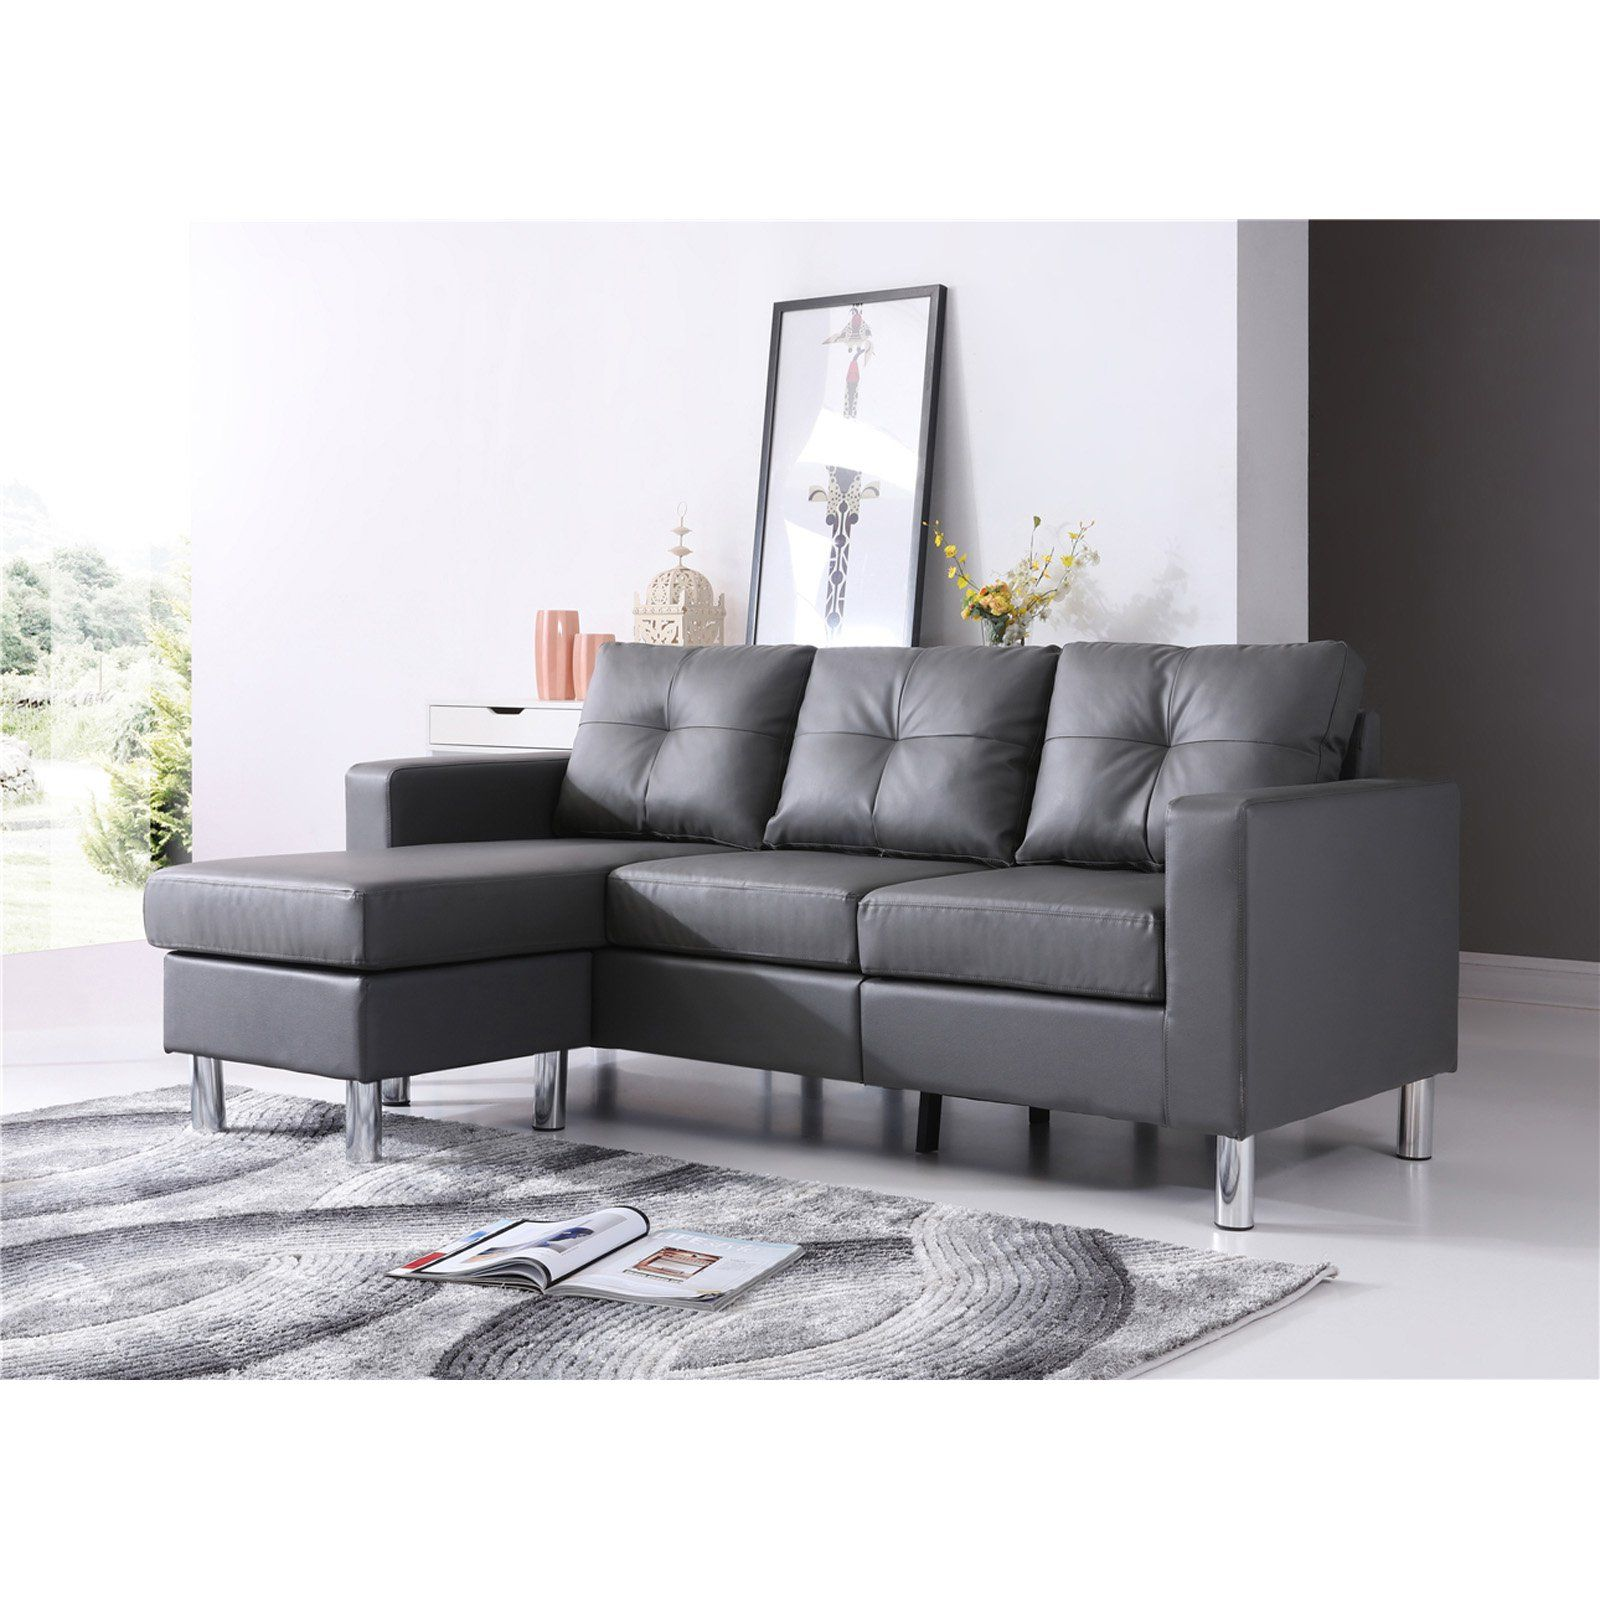 NH Designs Small Space Convertible Sectional Sofa in 2019 ...